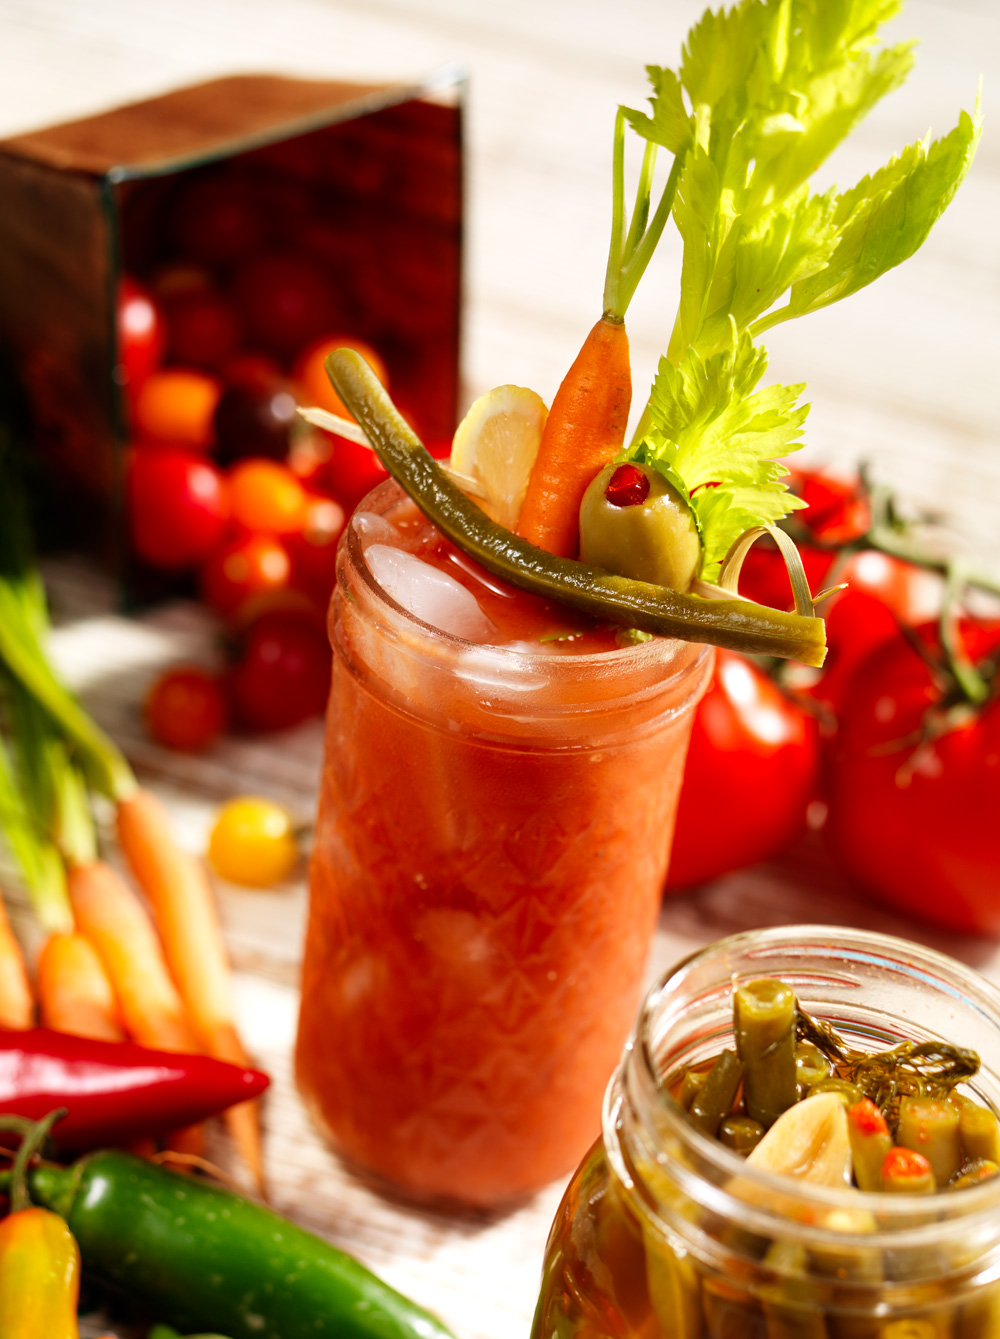 Pickled Green Bean, Bloody Mary Drink©David Bell